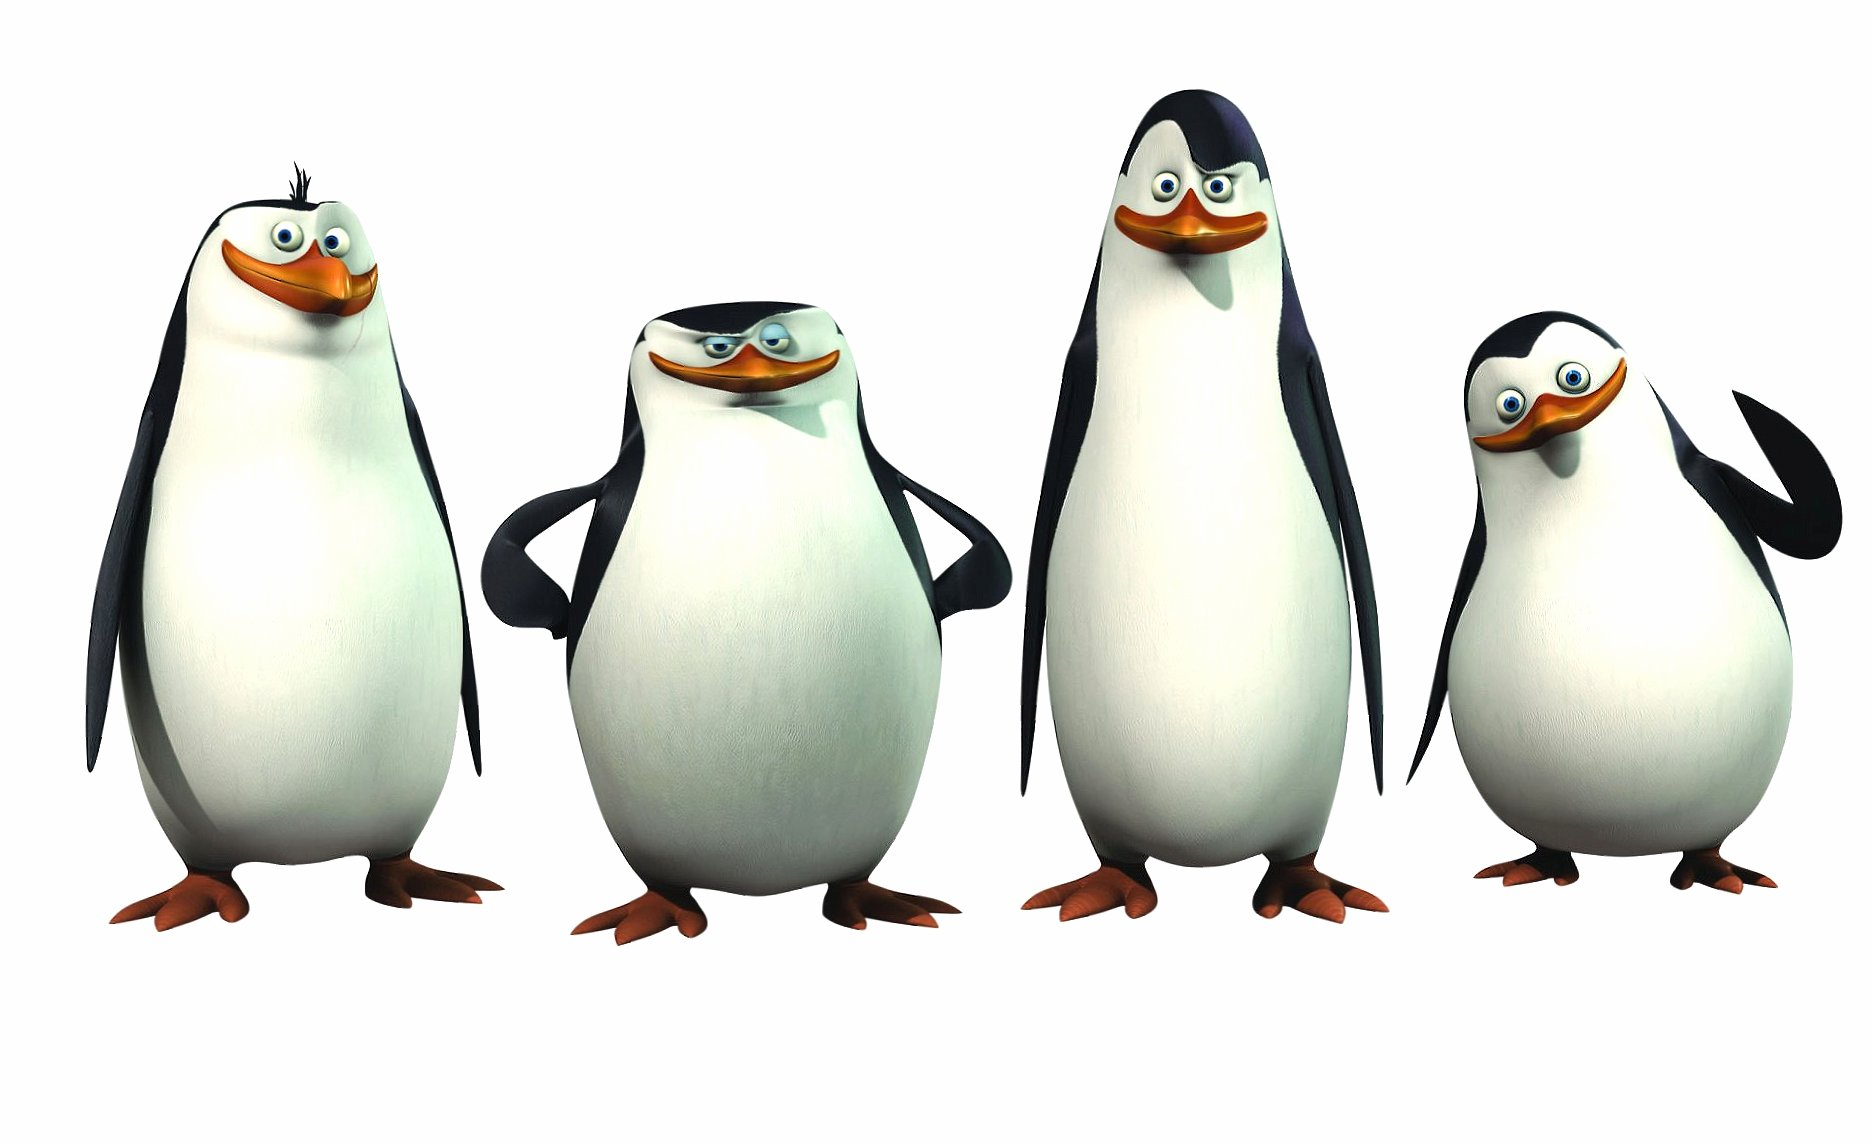 The penguins of madagascar wallpapers HD quality